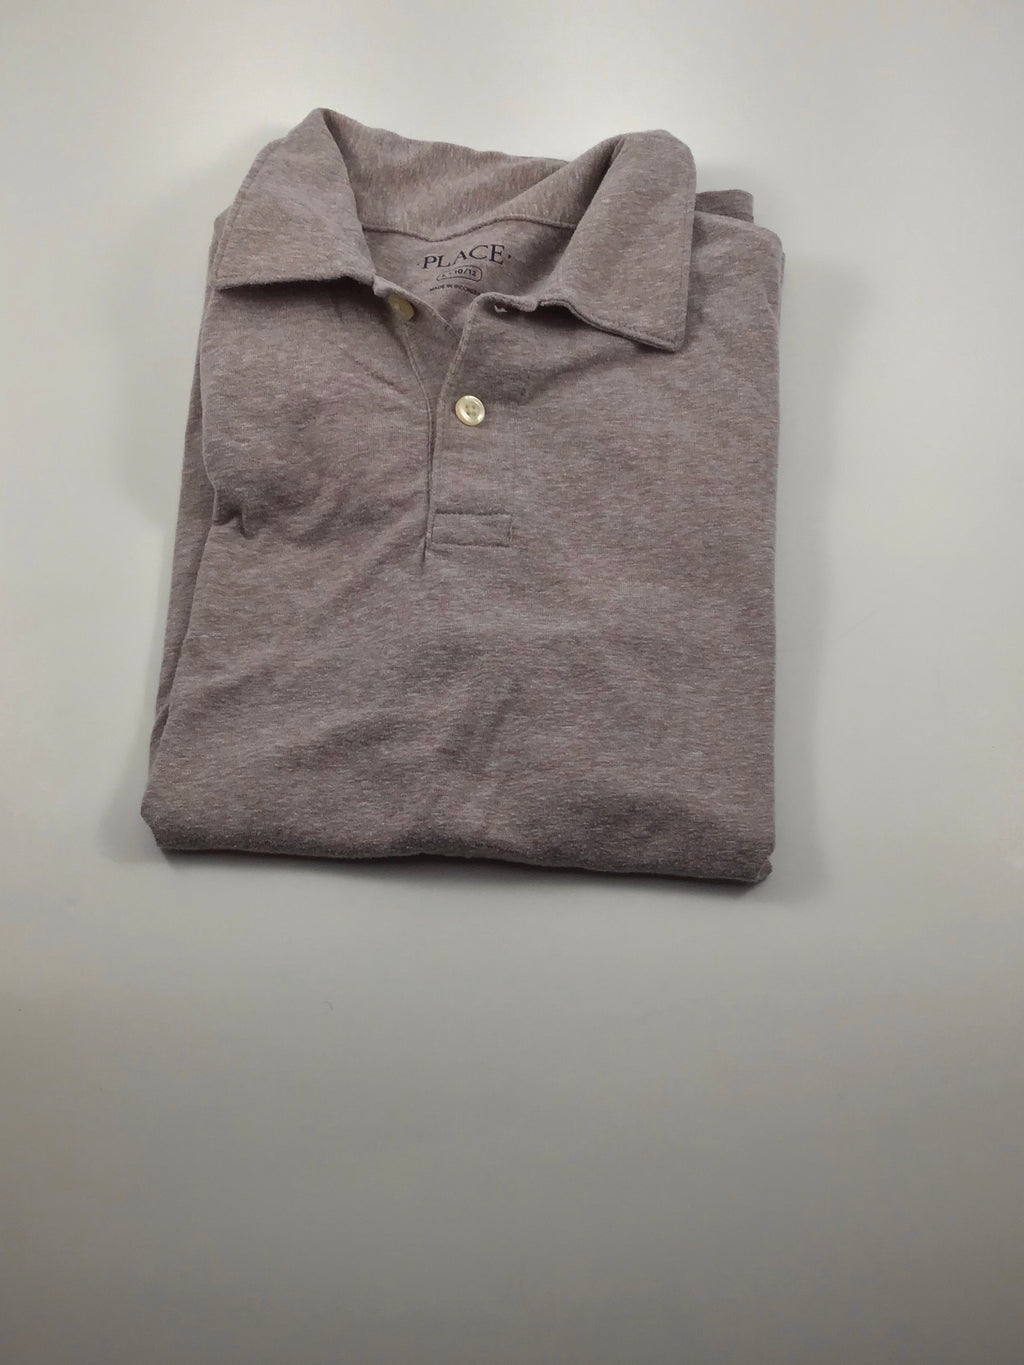 Boy's Short Sleeve Shirt - Size 10/12